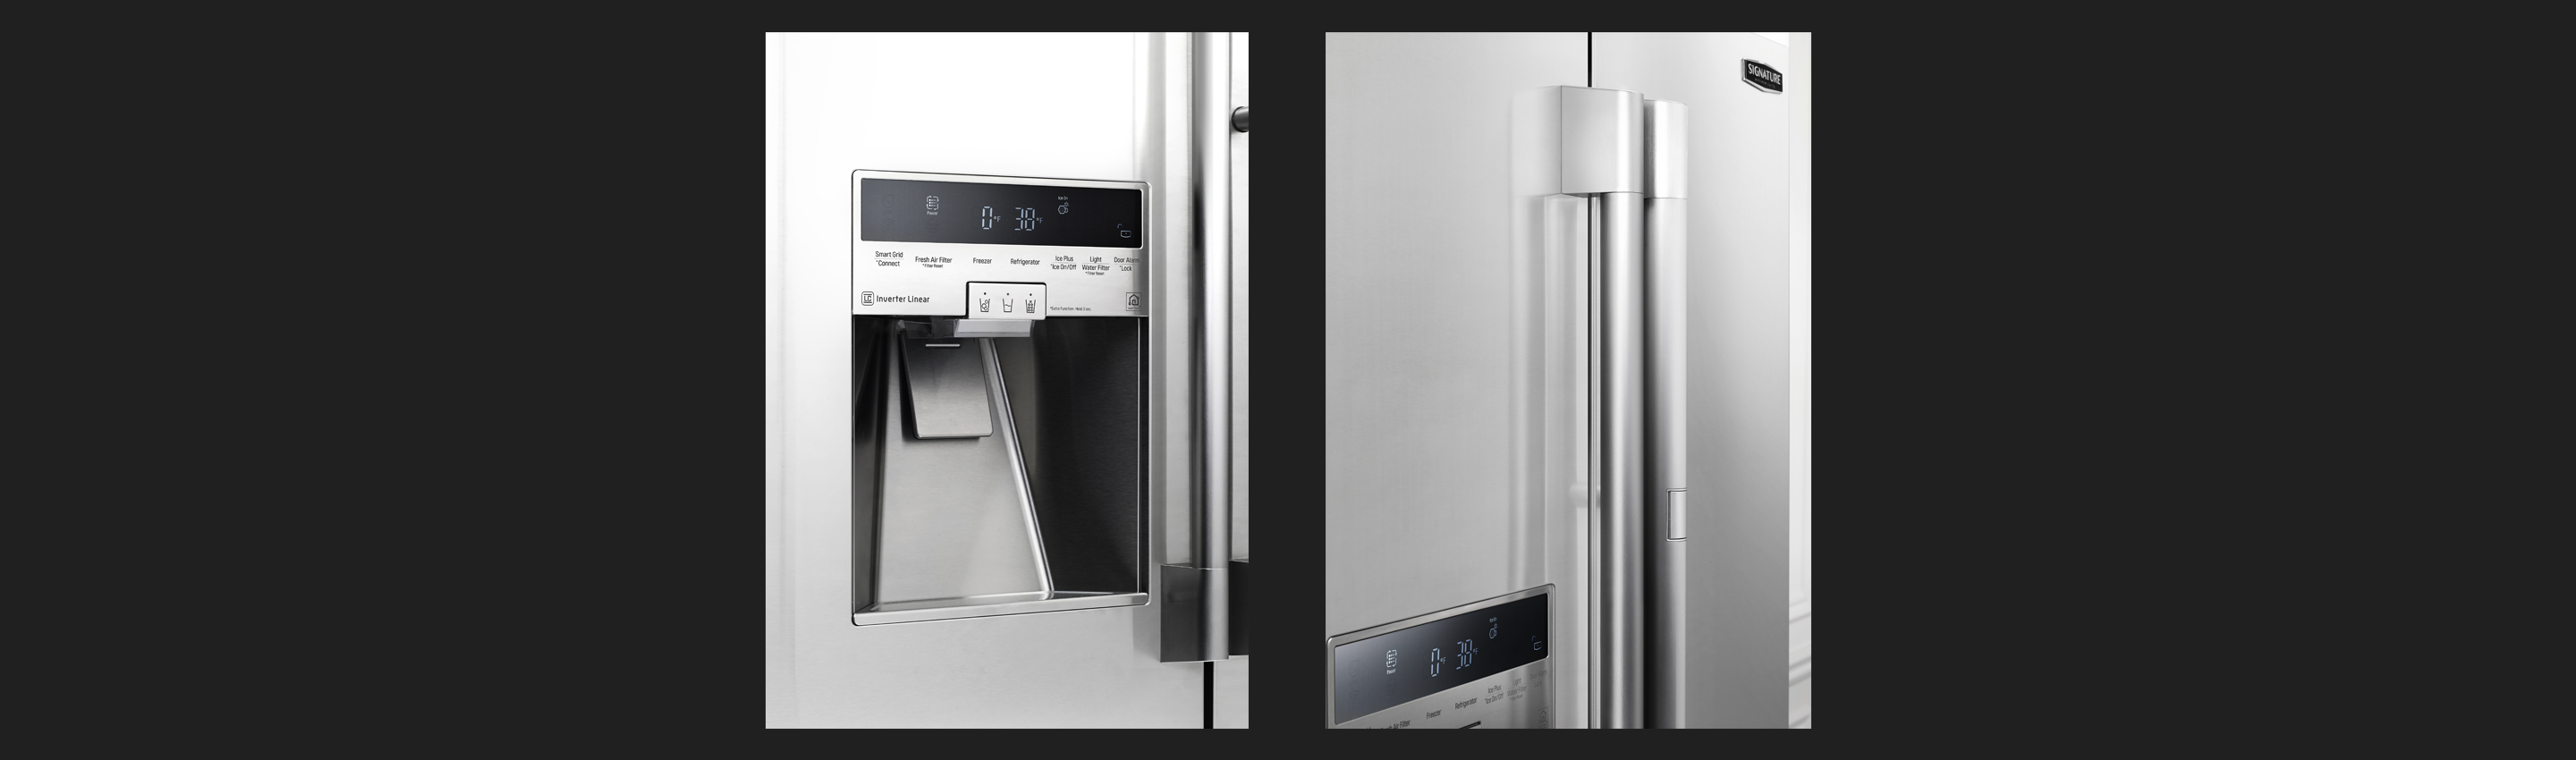 "36"" Counter-Depth French Door Refrigerator Stainless Touch Control"